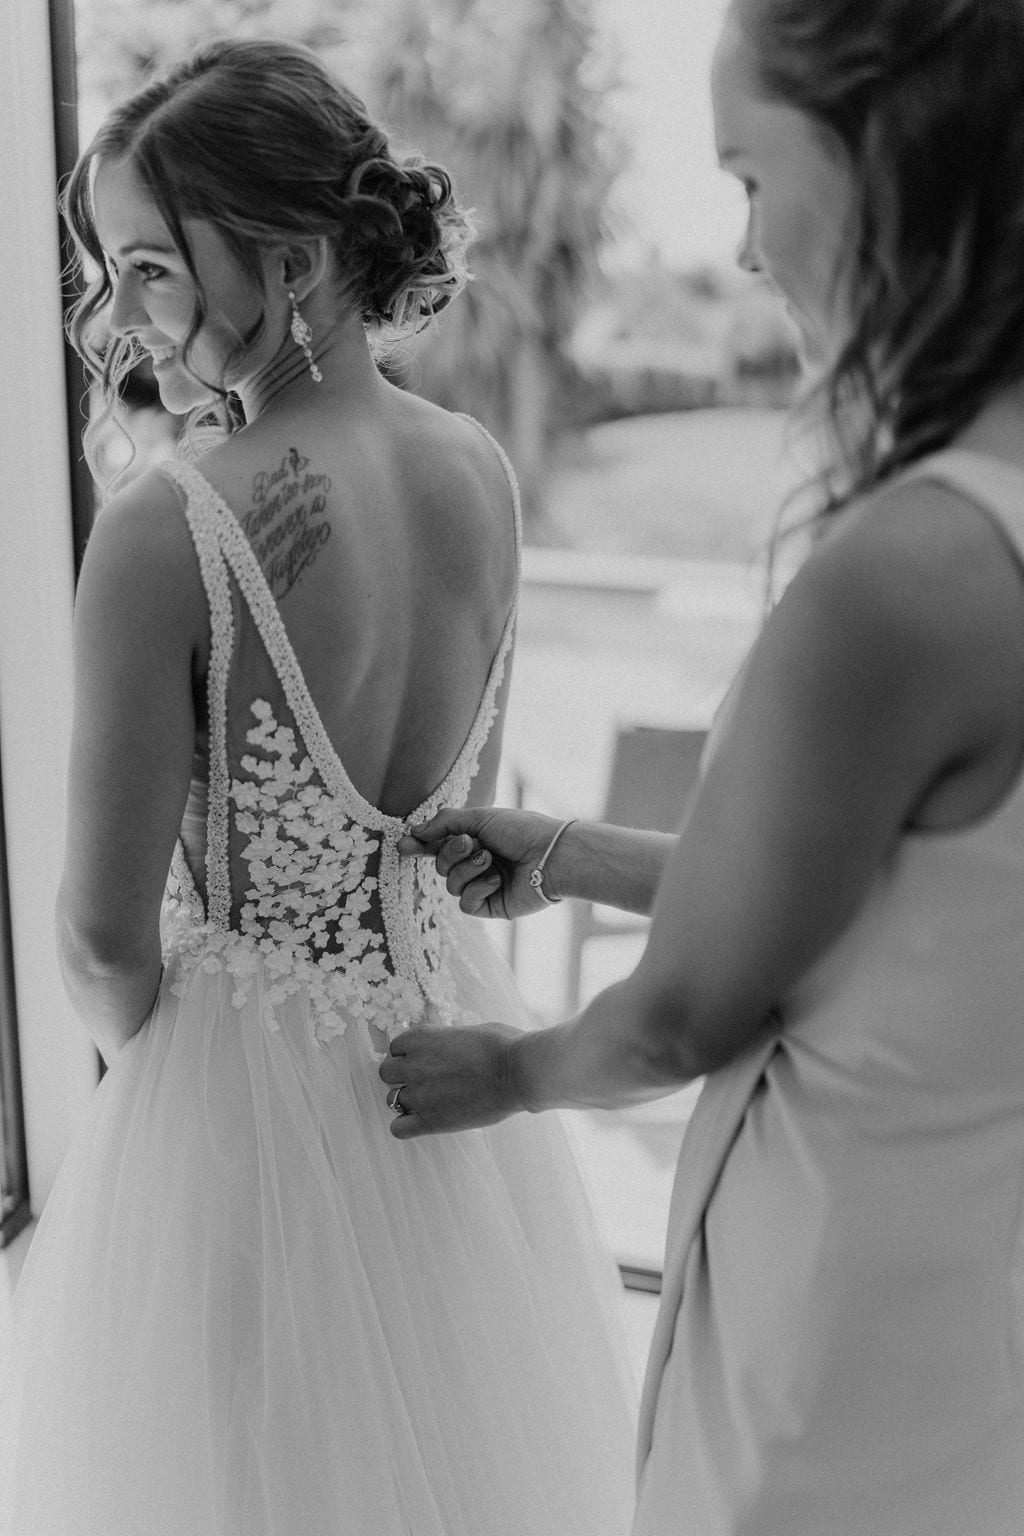 Vinka Design Features Real Weddings - bride in custom version of the Isabelle gown from our Heart of Havana collection. A fitted nude based bodice with delicate 3D beaded flowers with hand beaded trim and a skirt of dreamy tulle. Bride being fitted into dress